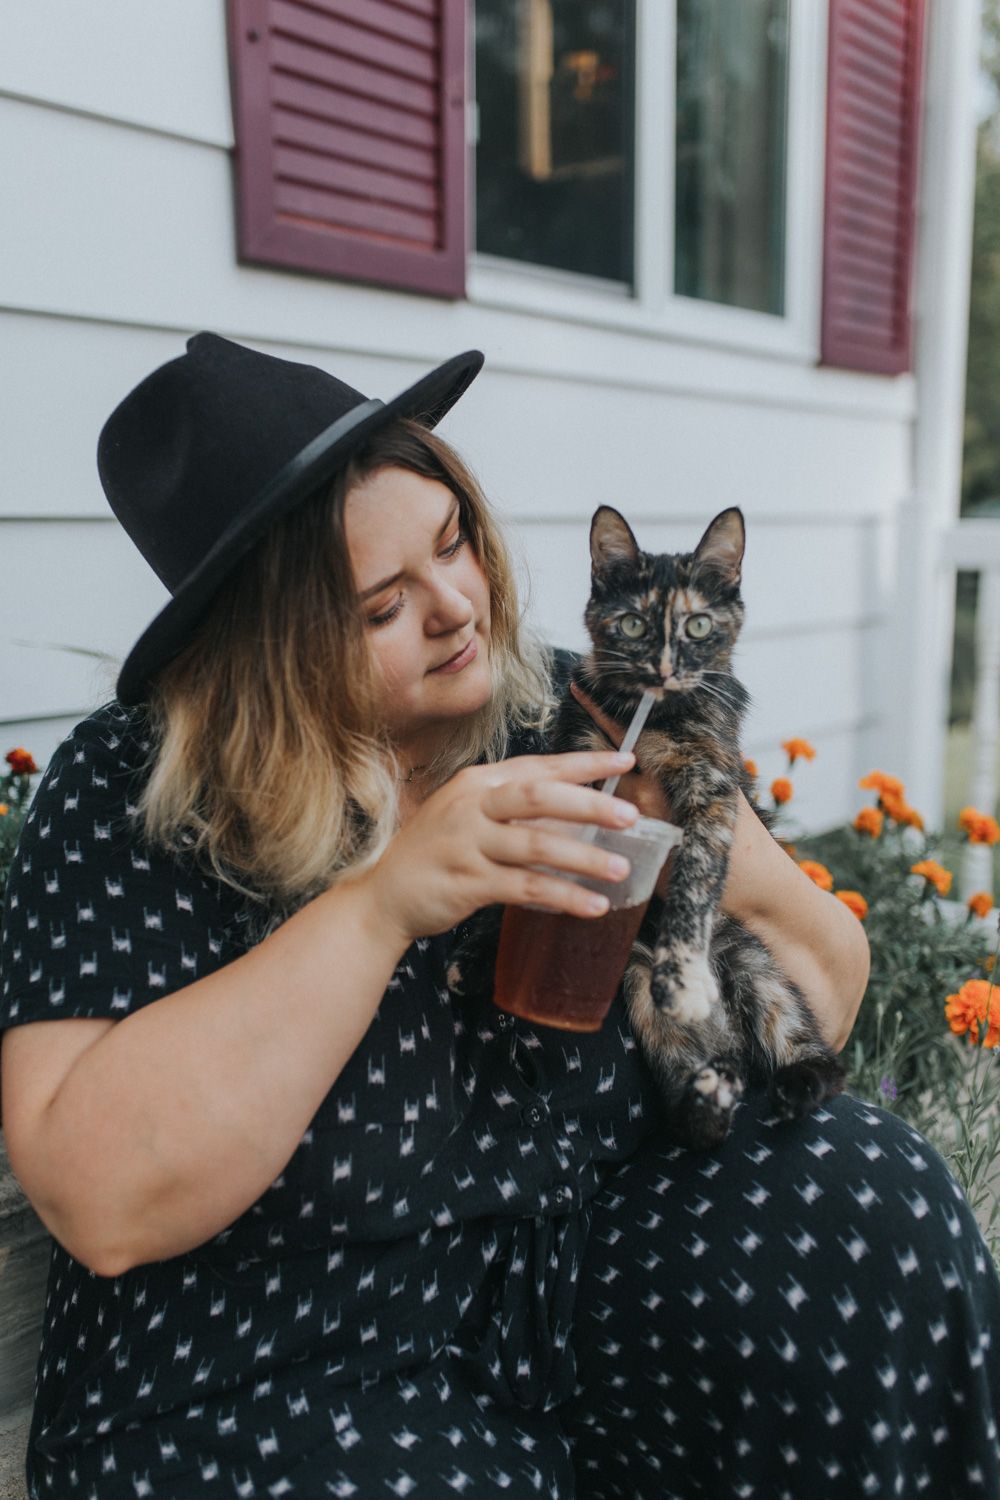 Hi, I'm Cate - I love cats and iced coffee